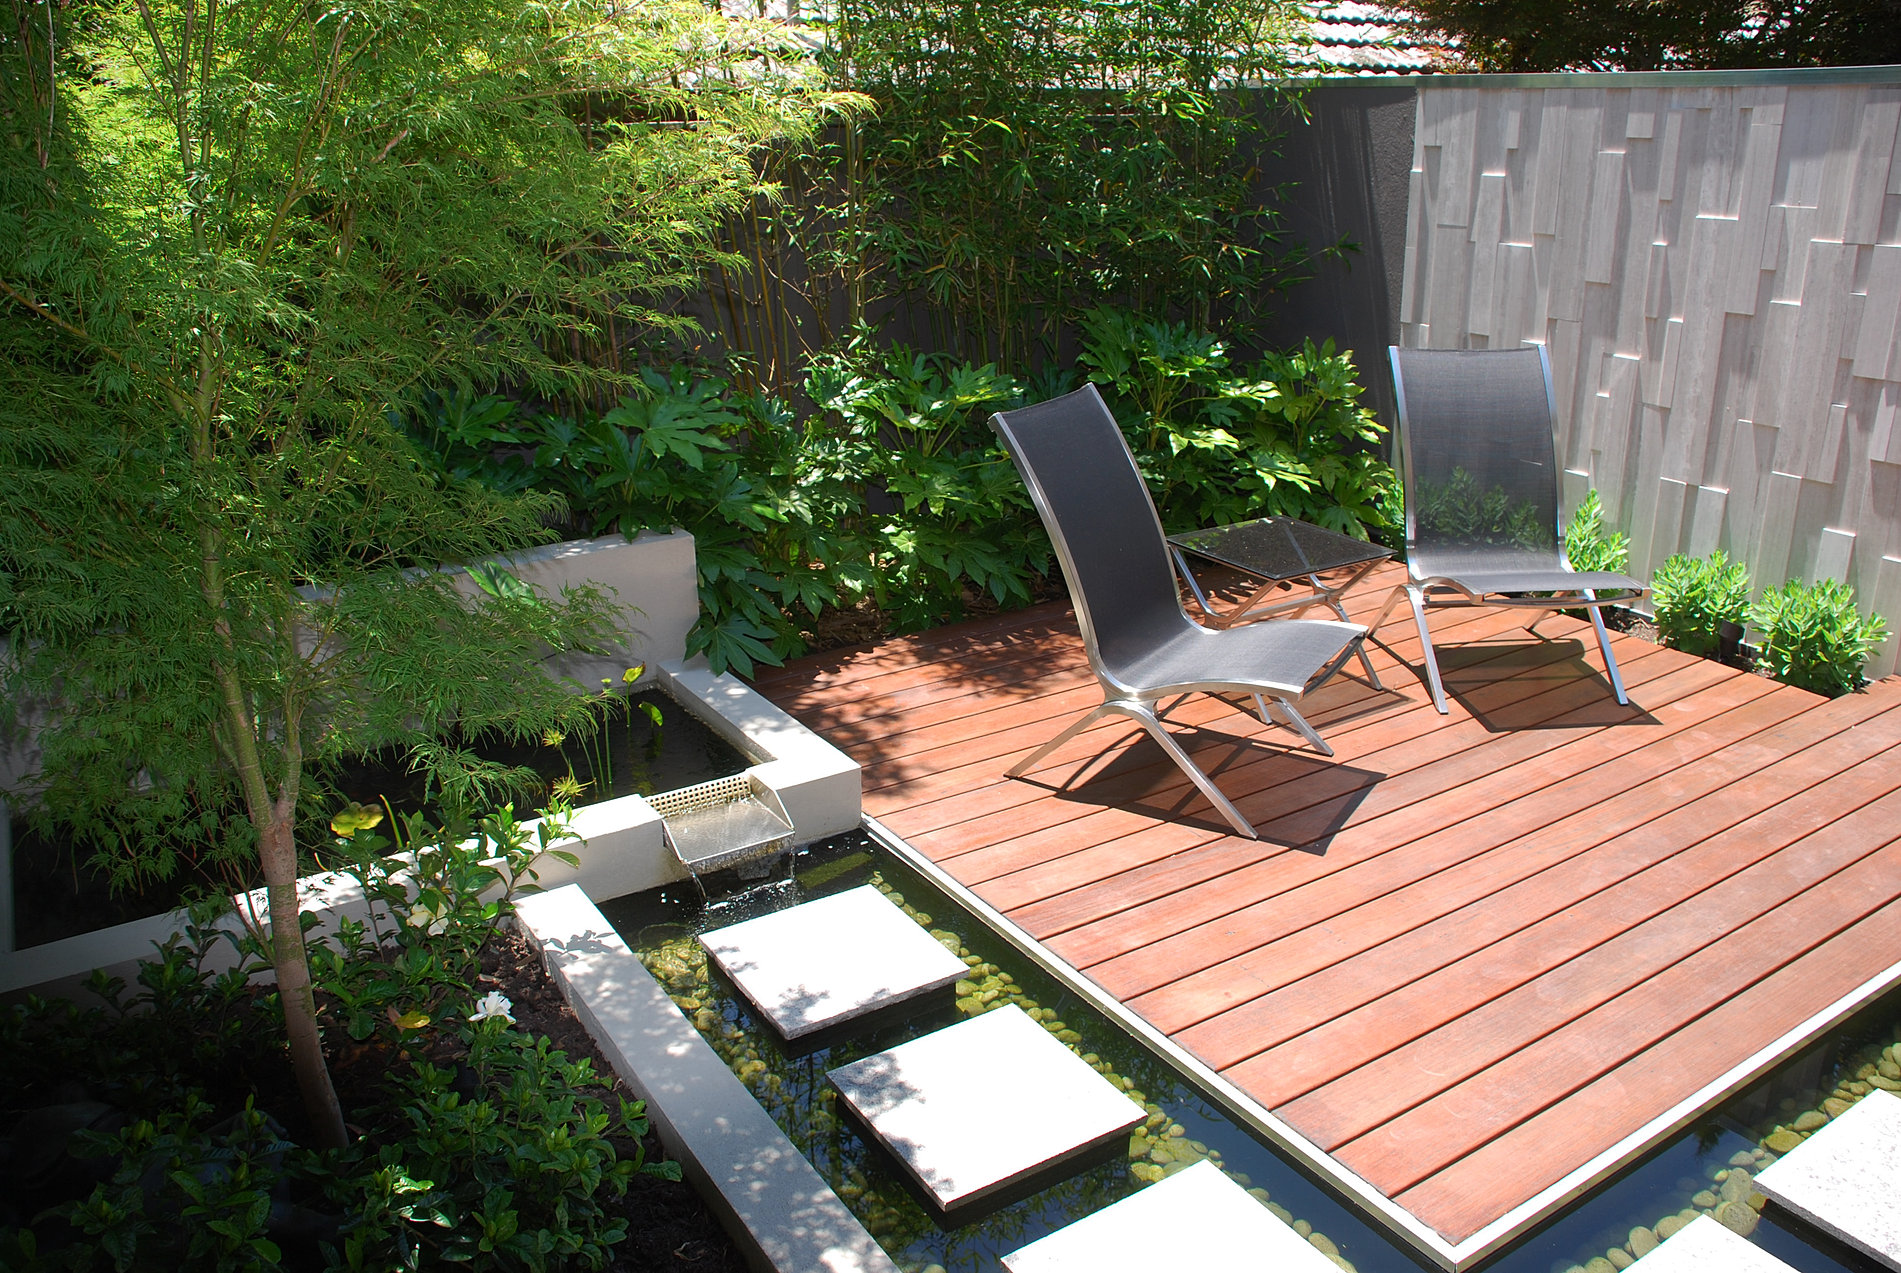 Landscaping melbourne melbourne landscape design for Landscape and design